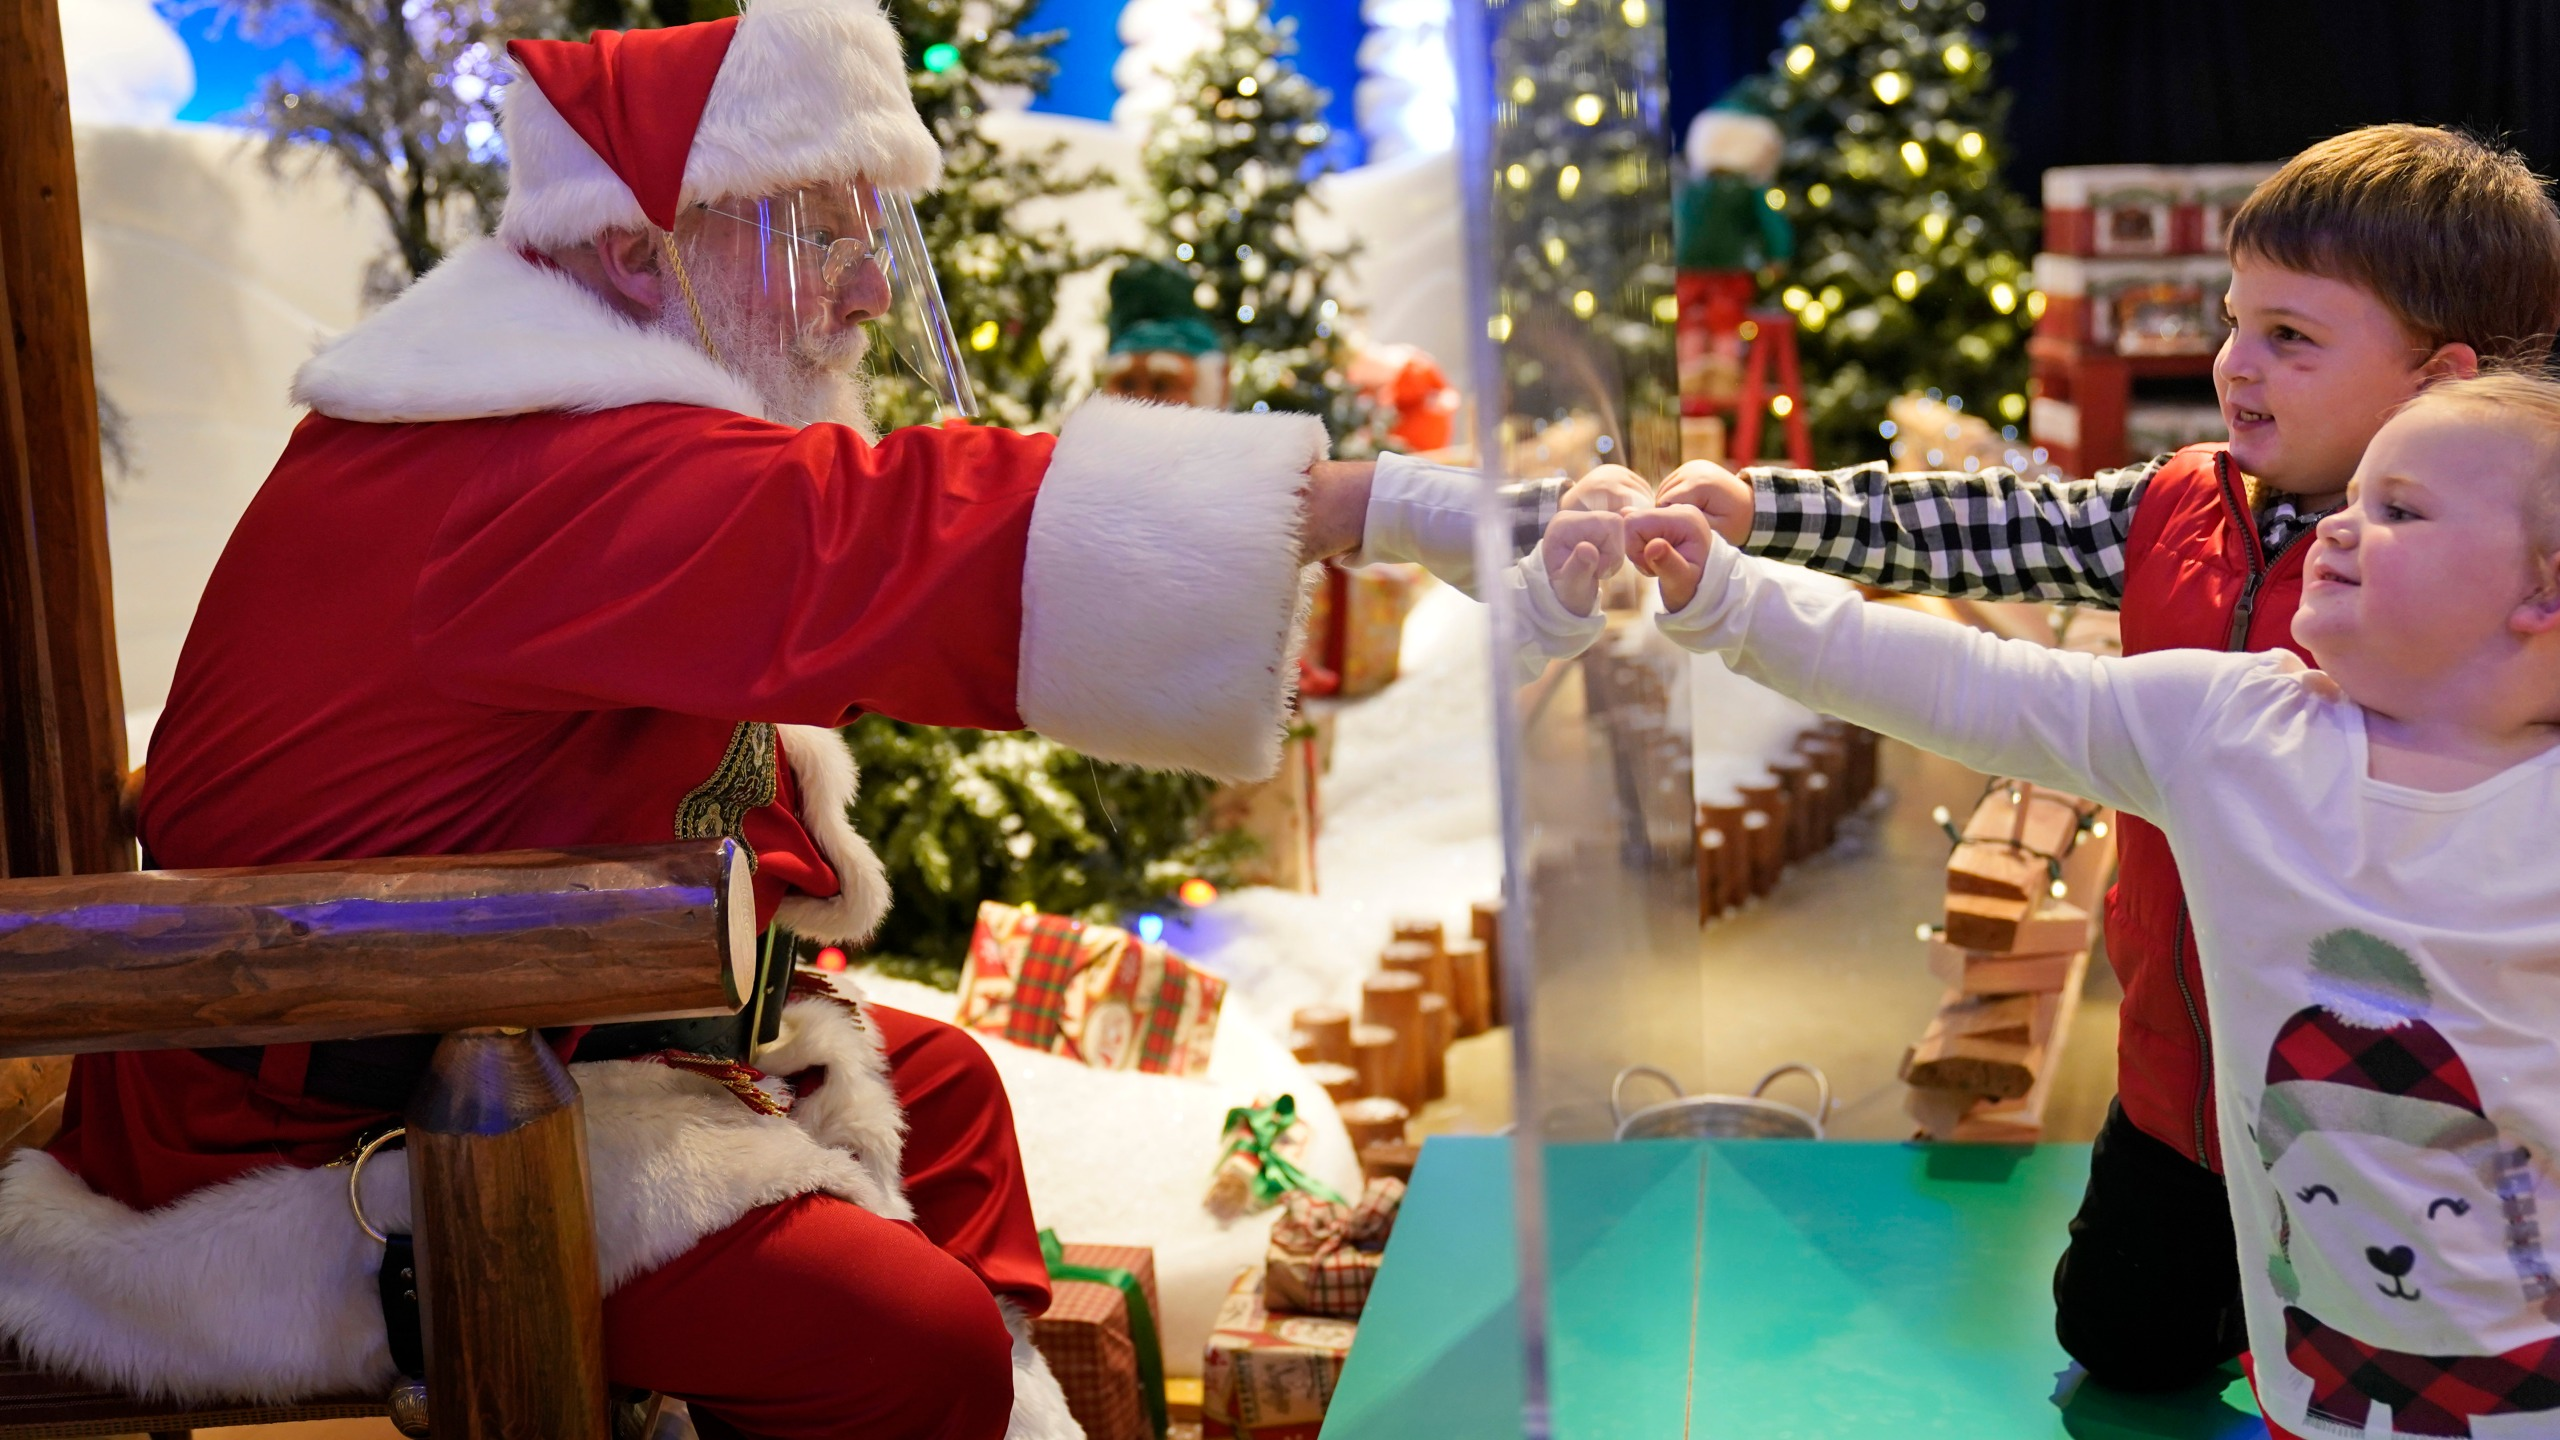 Fort Wayne Christmas Events 2020 Mall Here comes Santa Claus – with face masks and plexiglass – WANE 15